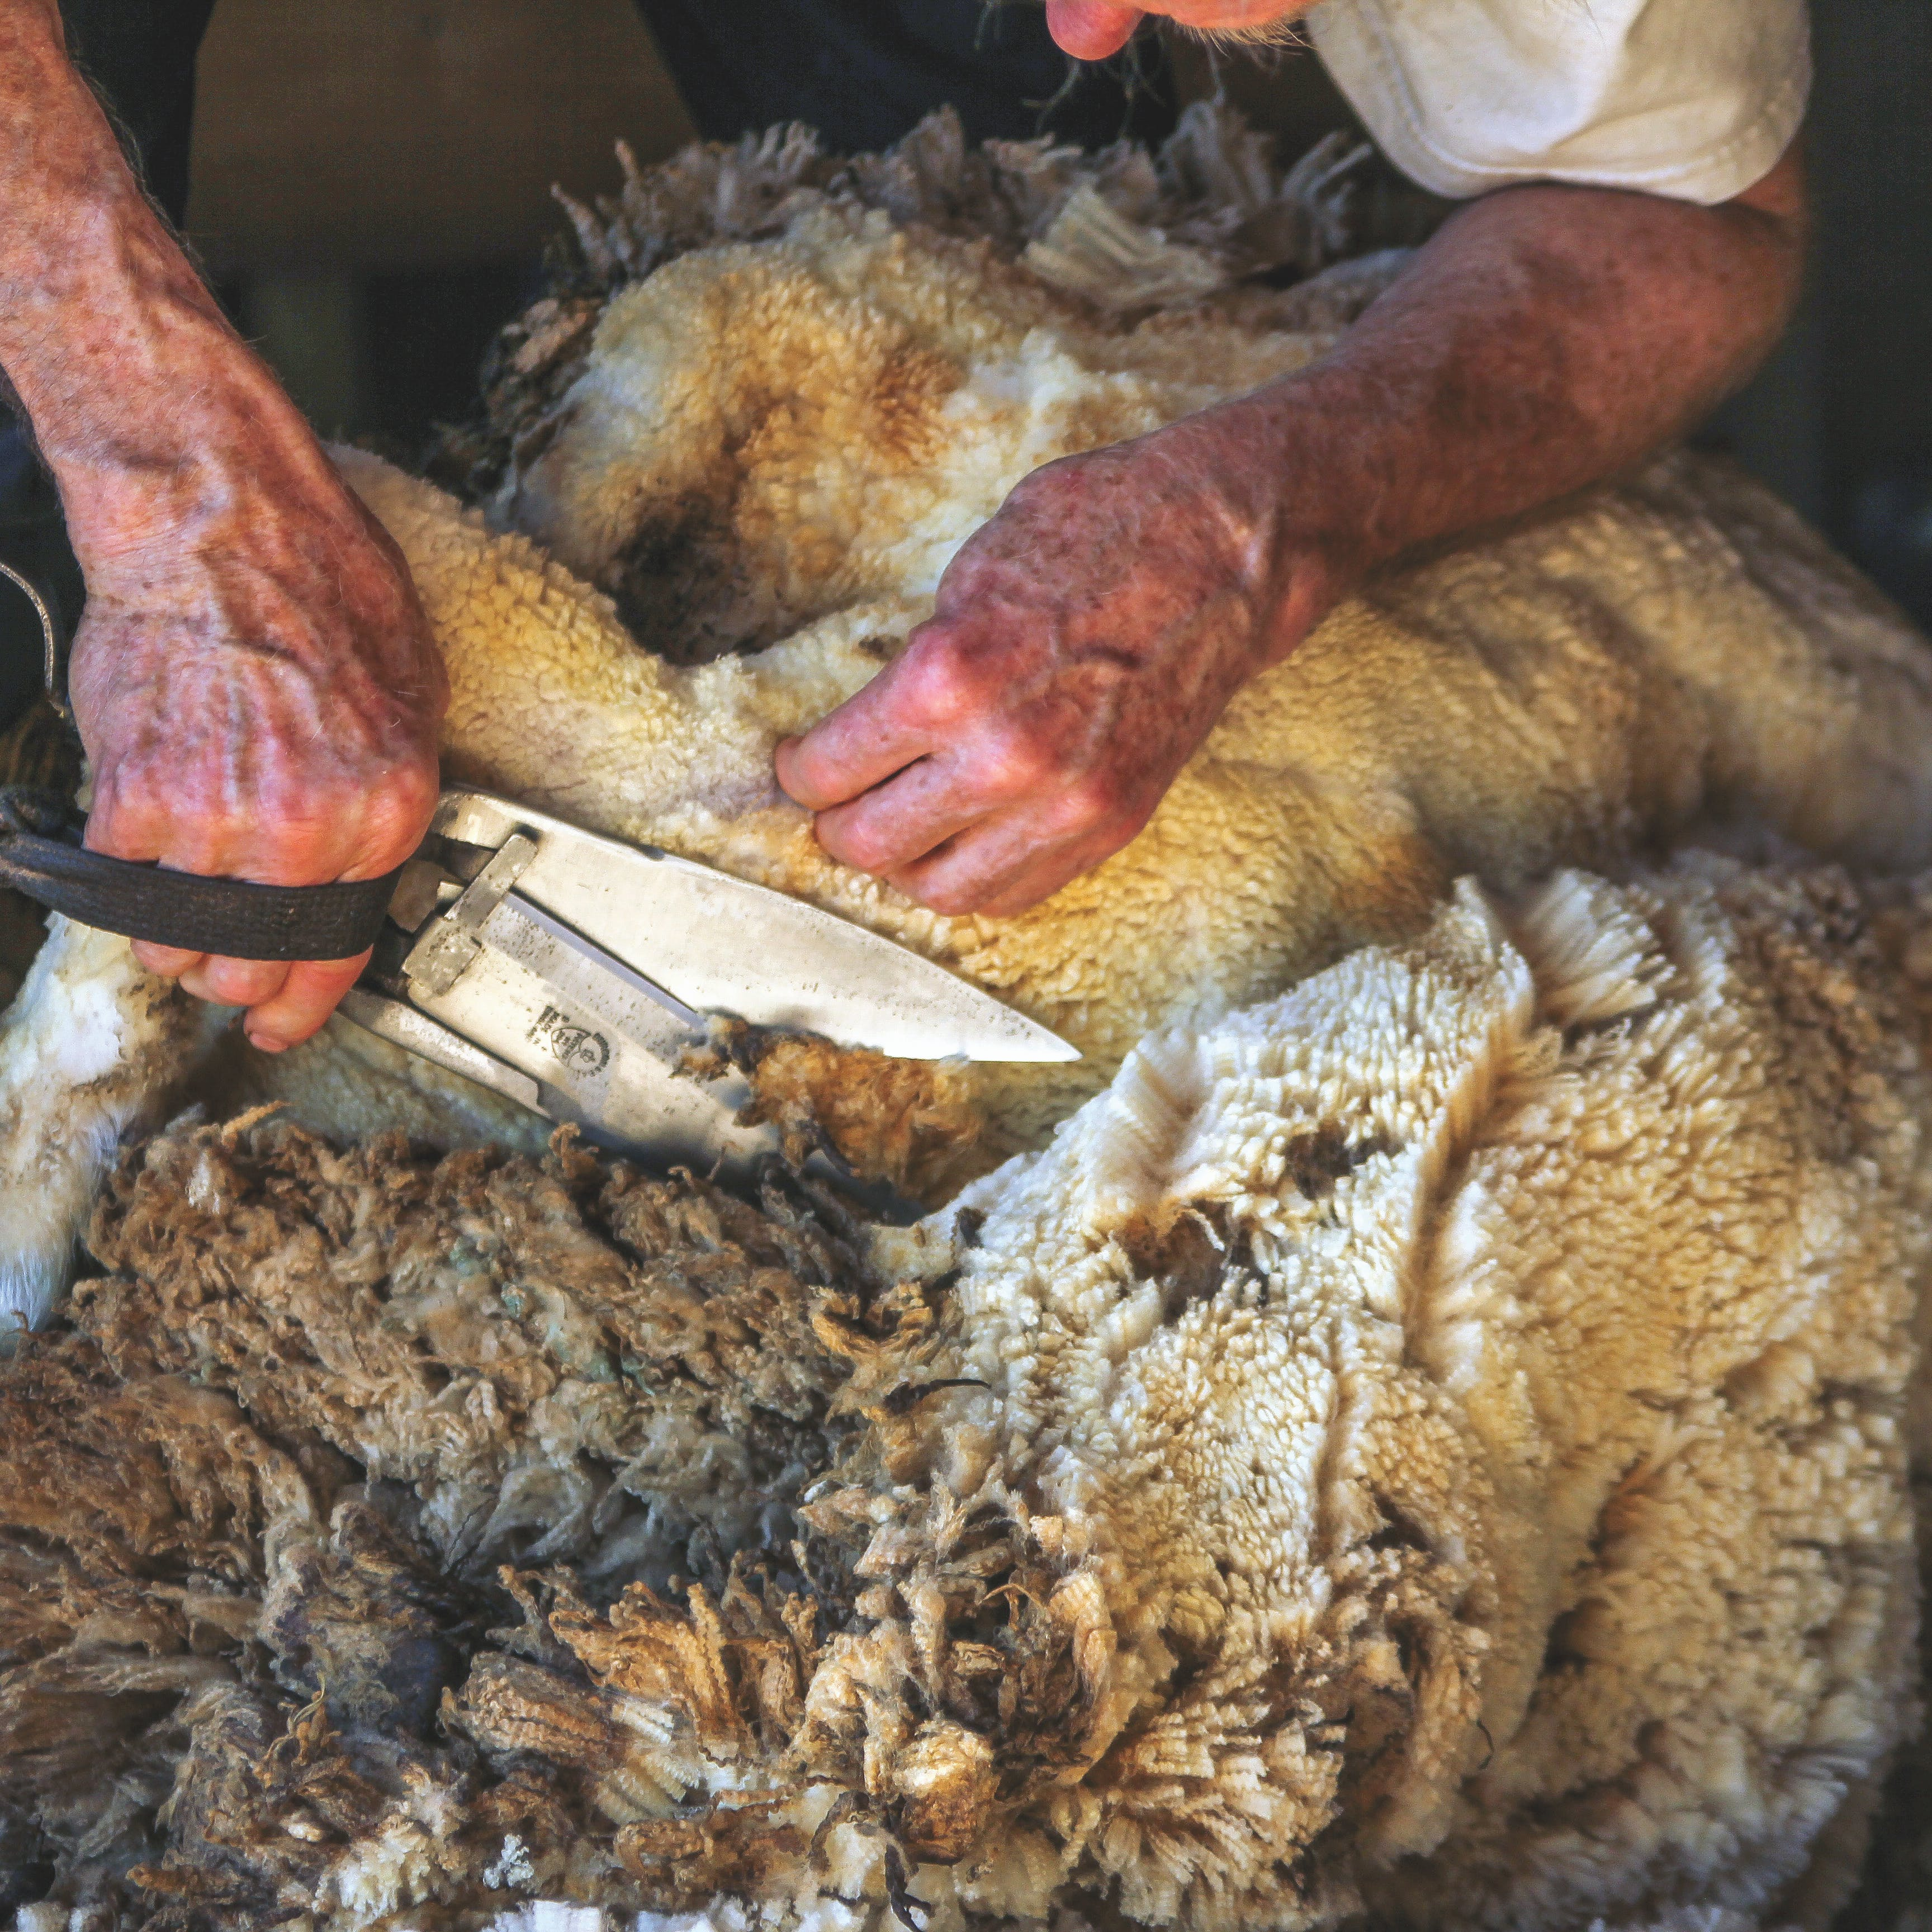 Close-up of sheep being sheared with hand scissors